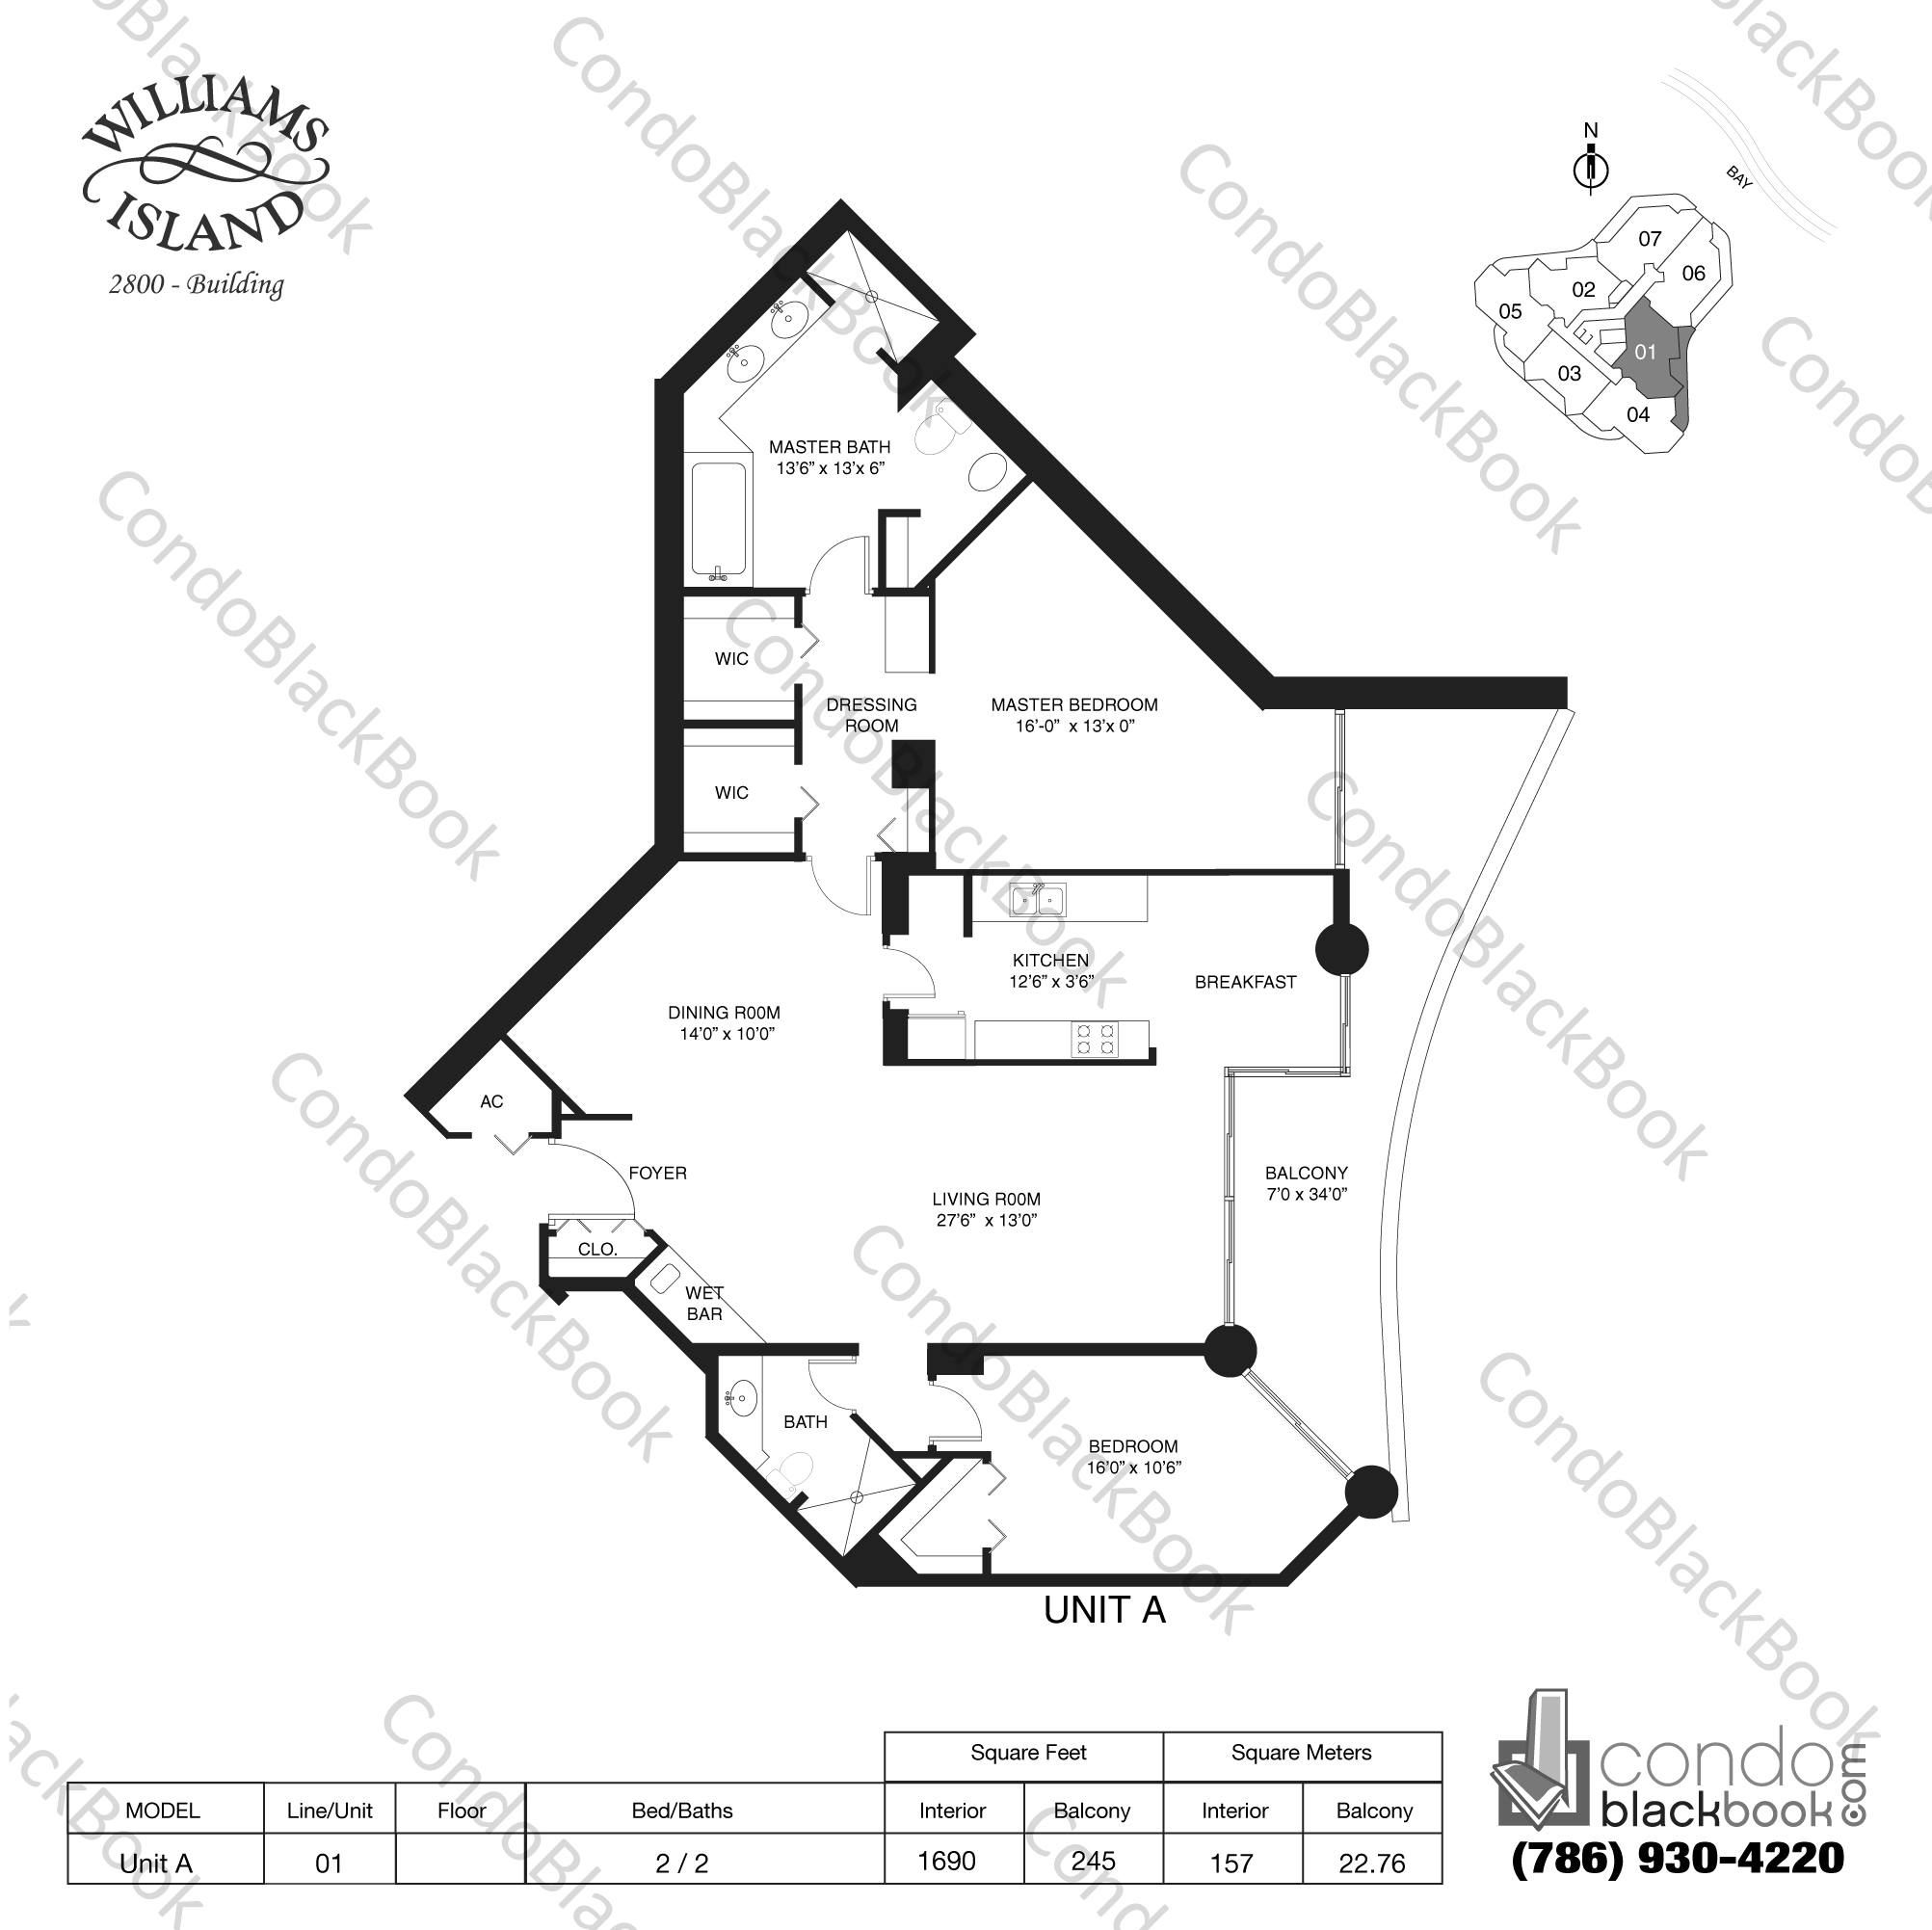 Floor plan for Williams Island 2800 Aventura, model Unit A, line 01, 2 / 2 bedrooms, 1690 sq ft